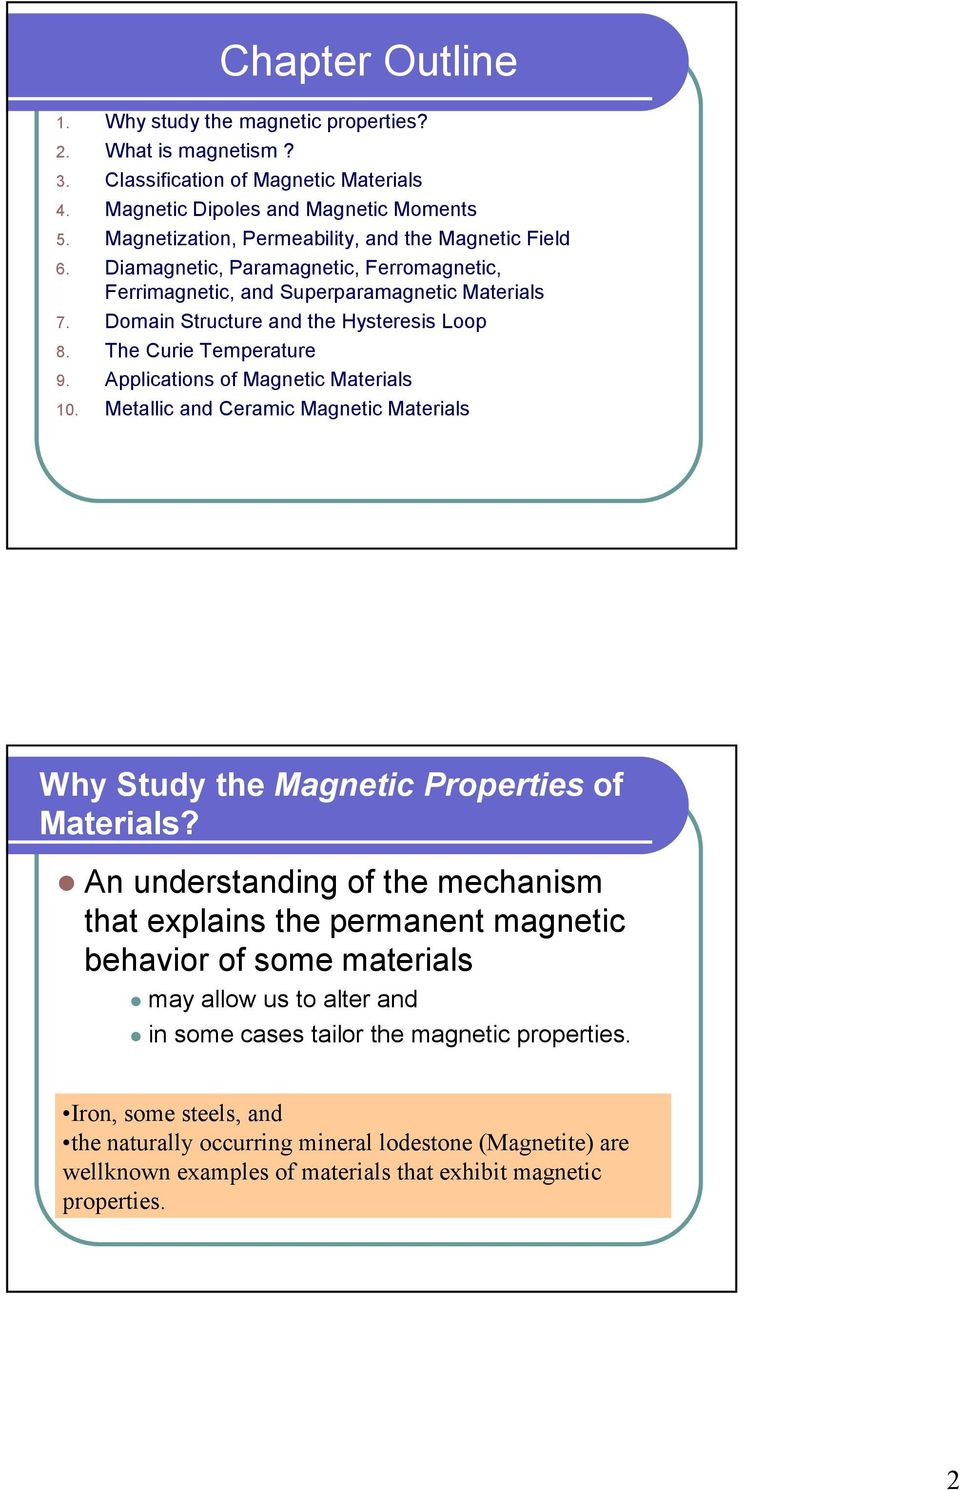 CHAPTER 5: MAGNETIC PROPERTIES - PDF